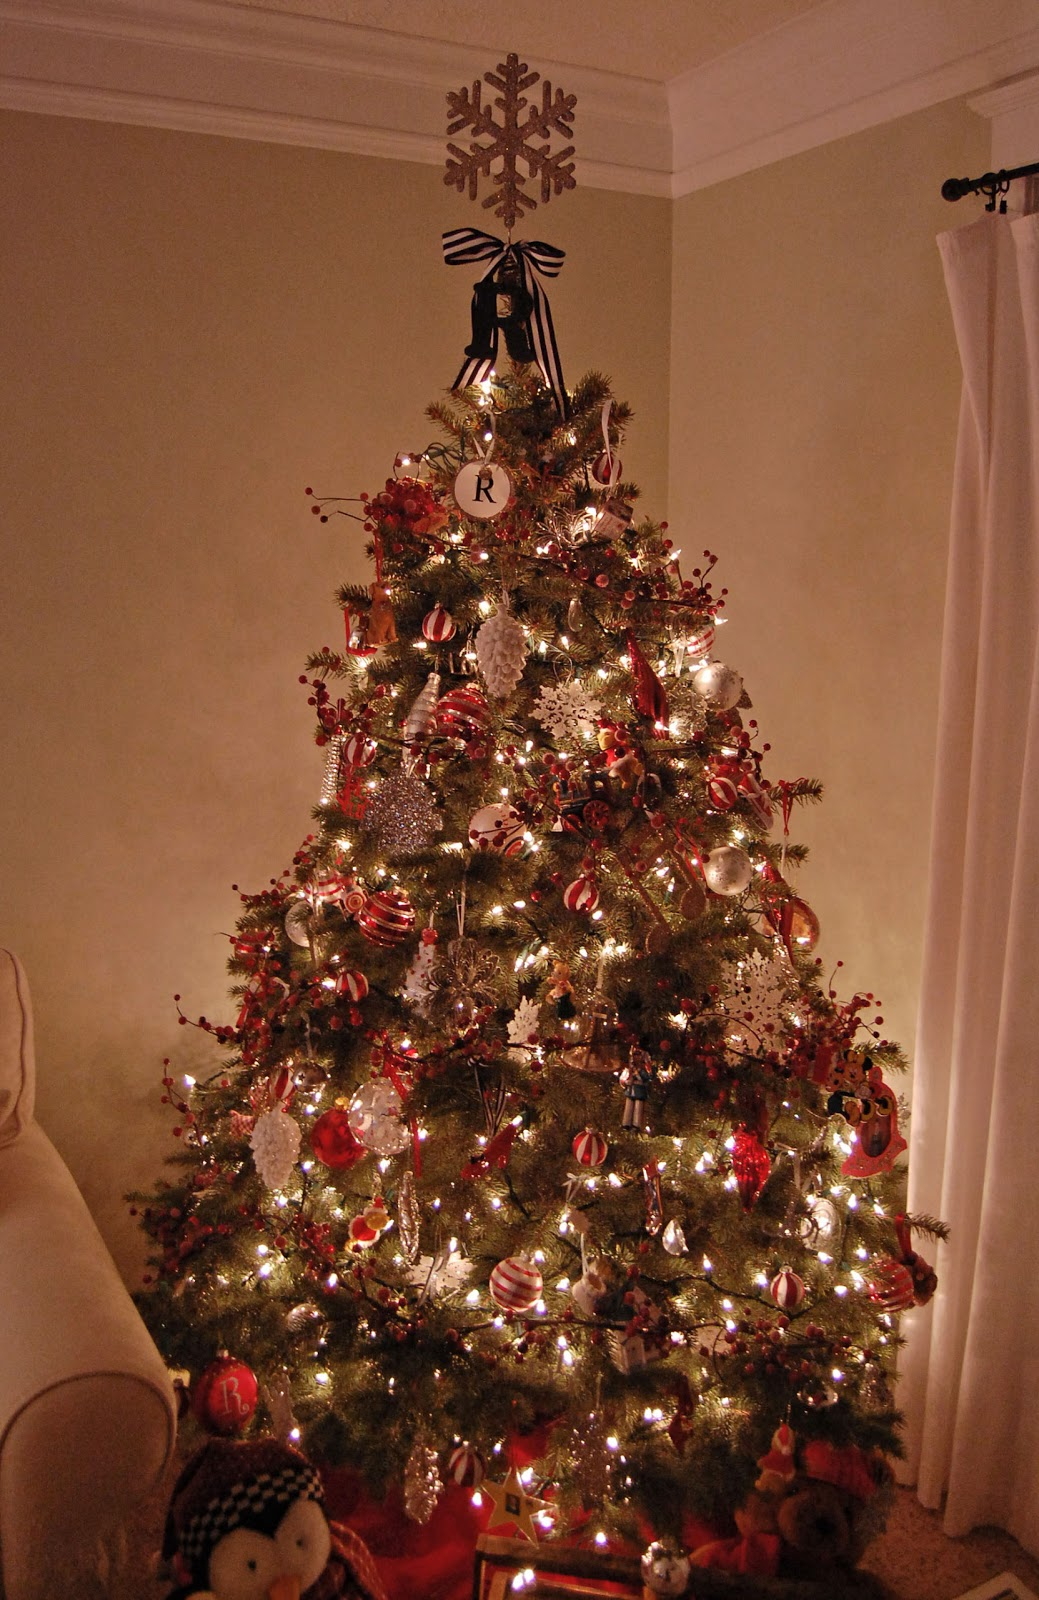 O Christmas Tree! · The Girl in the Red Shoes